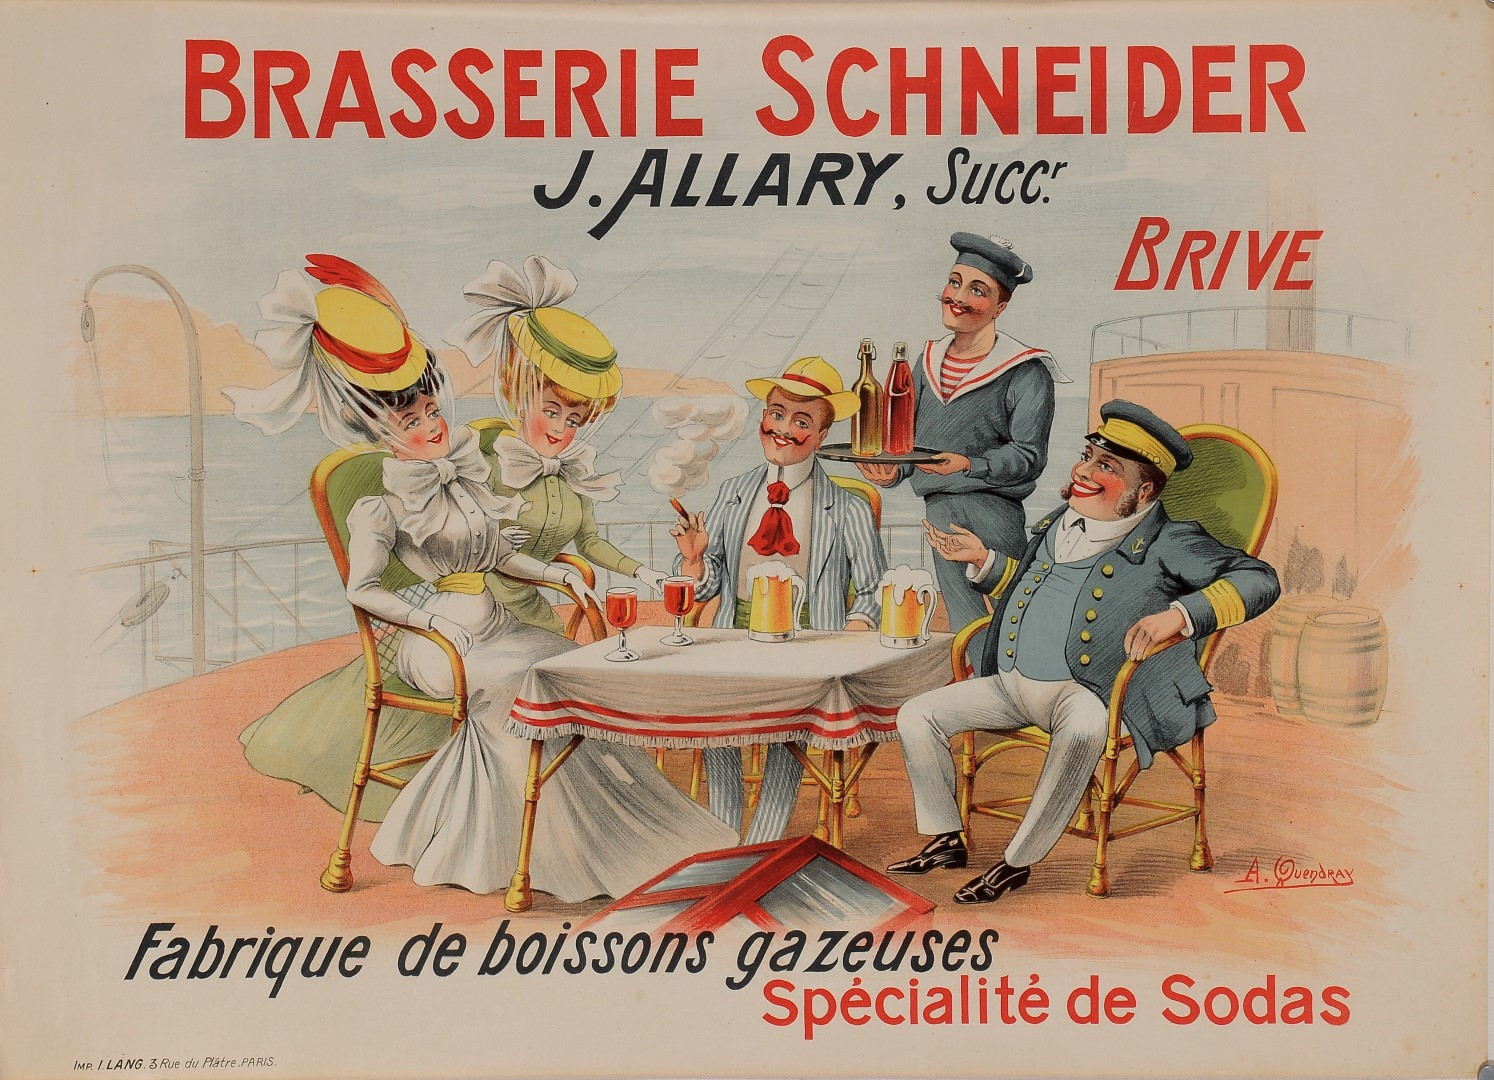 """Original Vintage French Poster for """"Brasserie Schneider"""" by A. Quendray 1920's"""